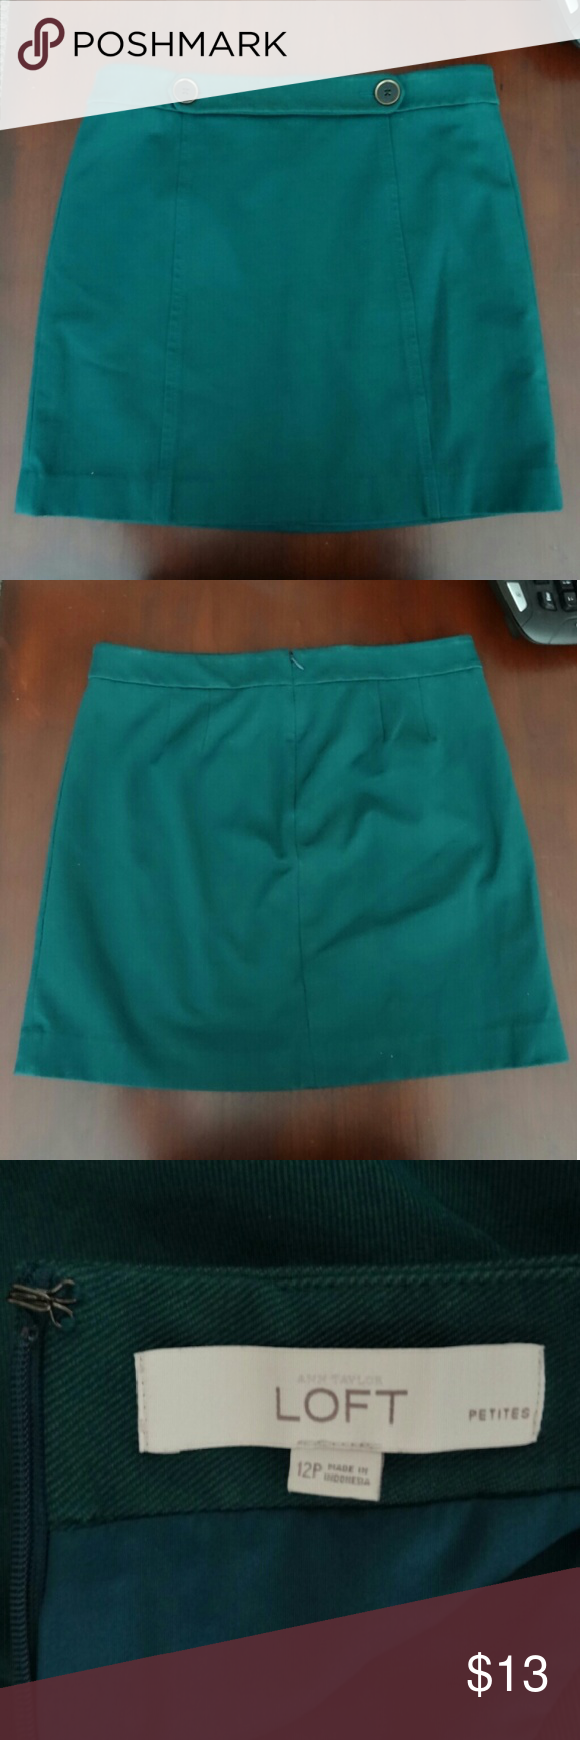 Ann Taylor Loft Skirt - Teal Size 12P Gently used Ann Taylor Loft teal skirt with copper button accents in size 12P.  Thanks for looking - Bundle to save! Ann Taylor Skirts Midi